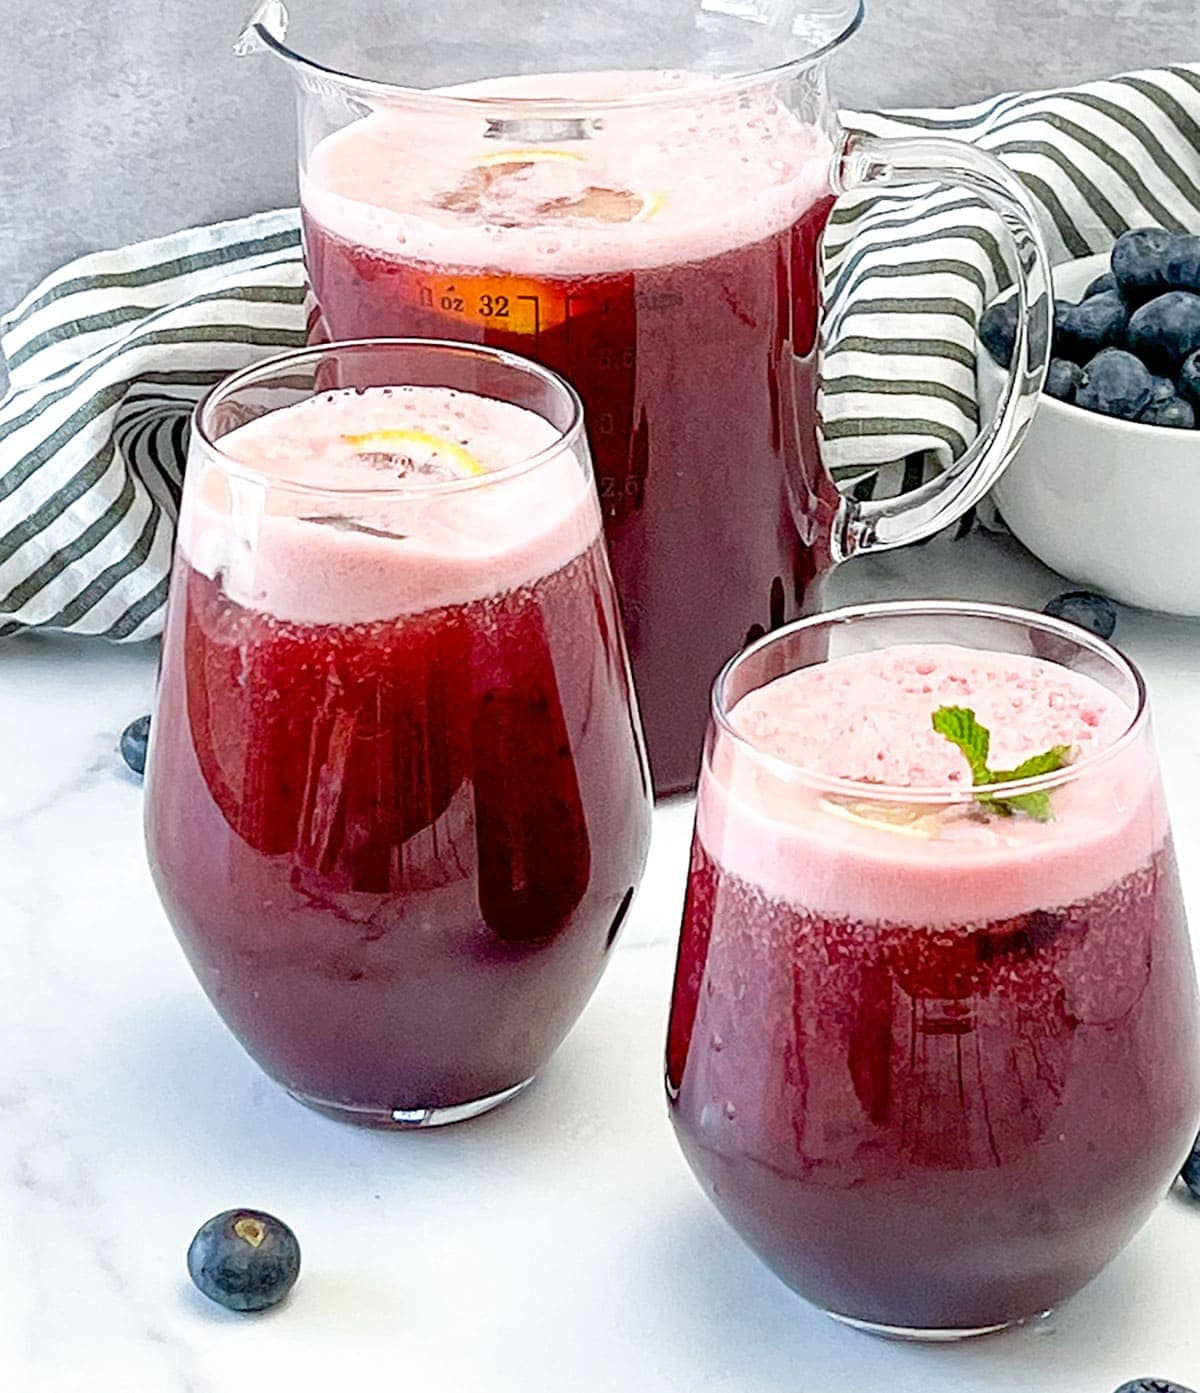 Blueberry lemonade in a pitcher and glasses on white background